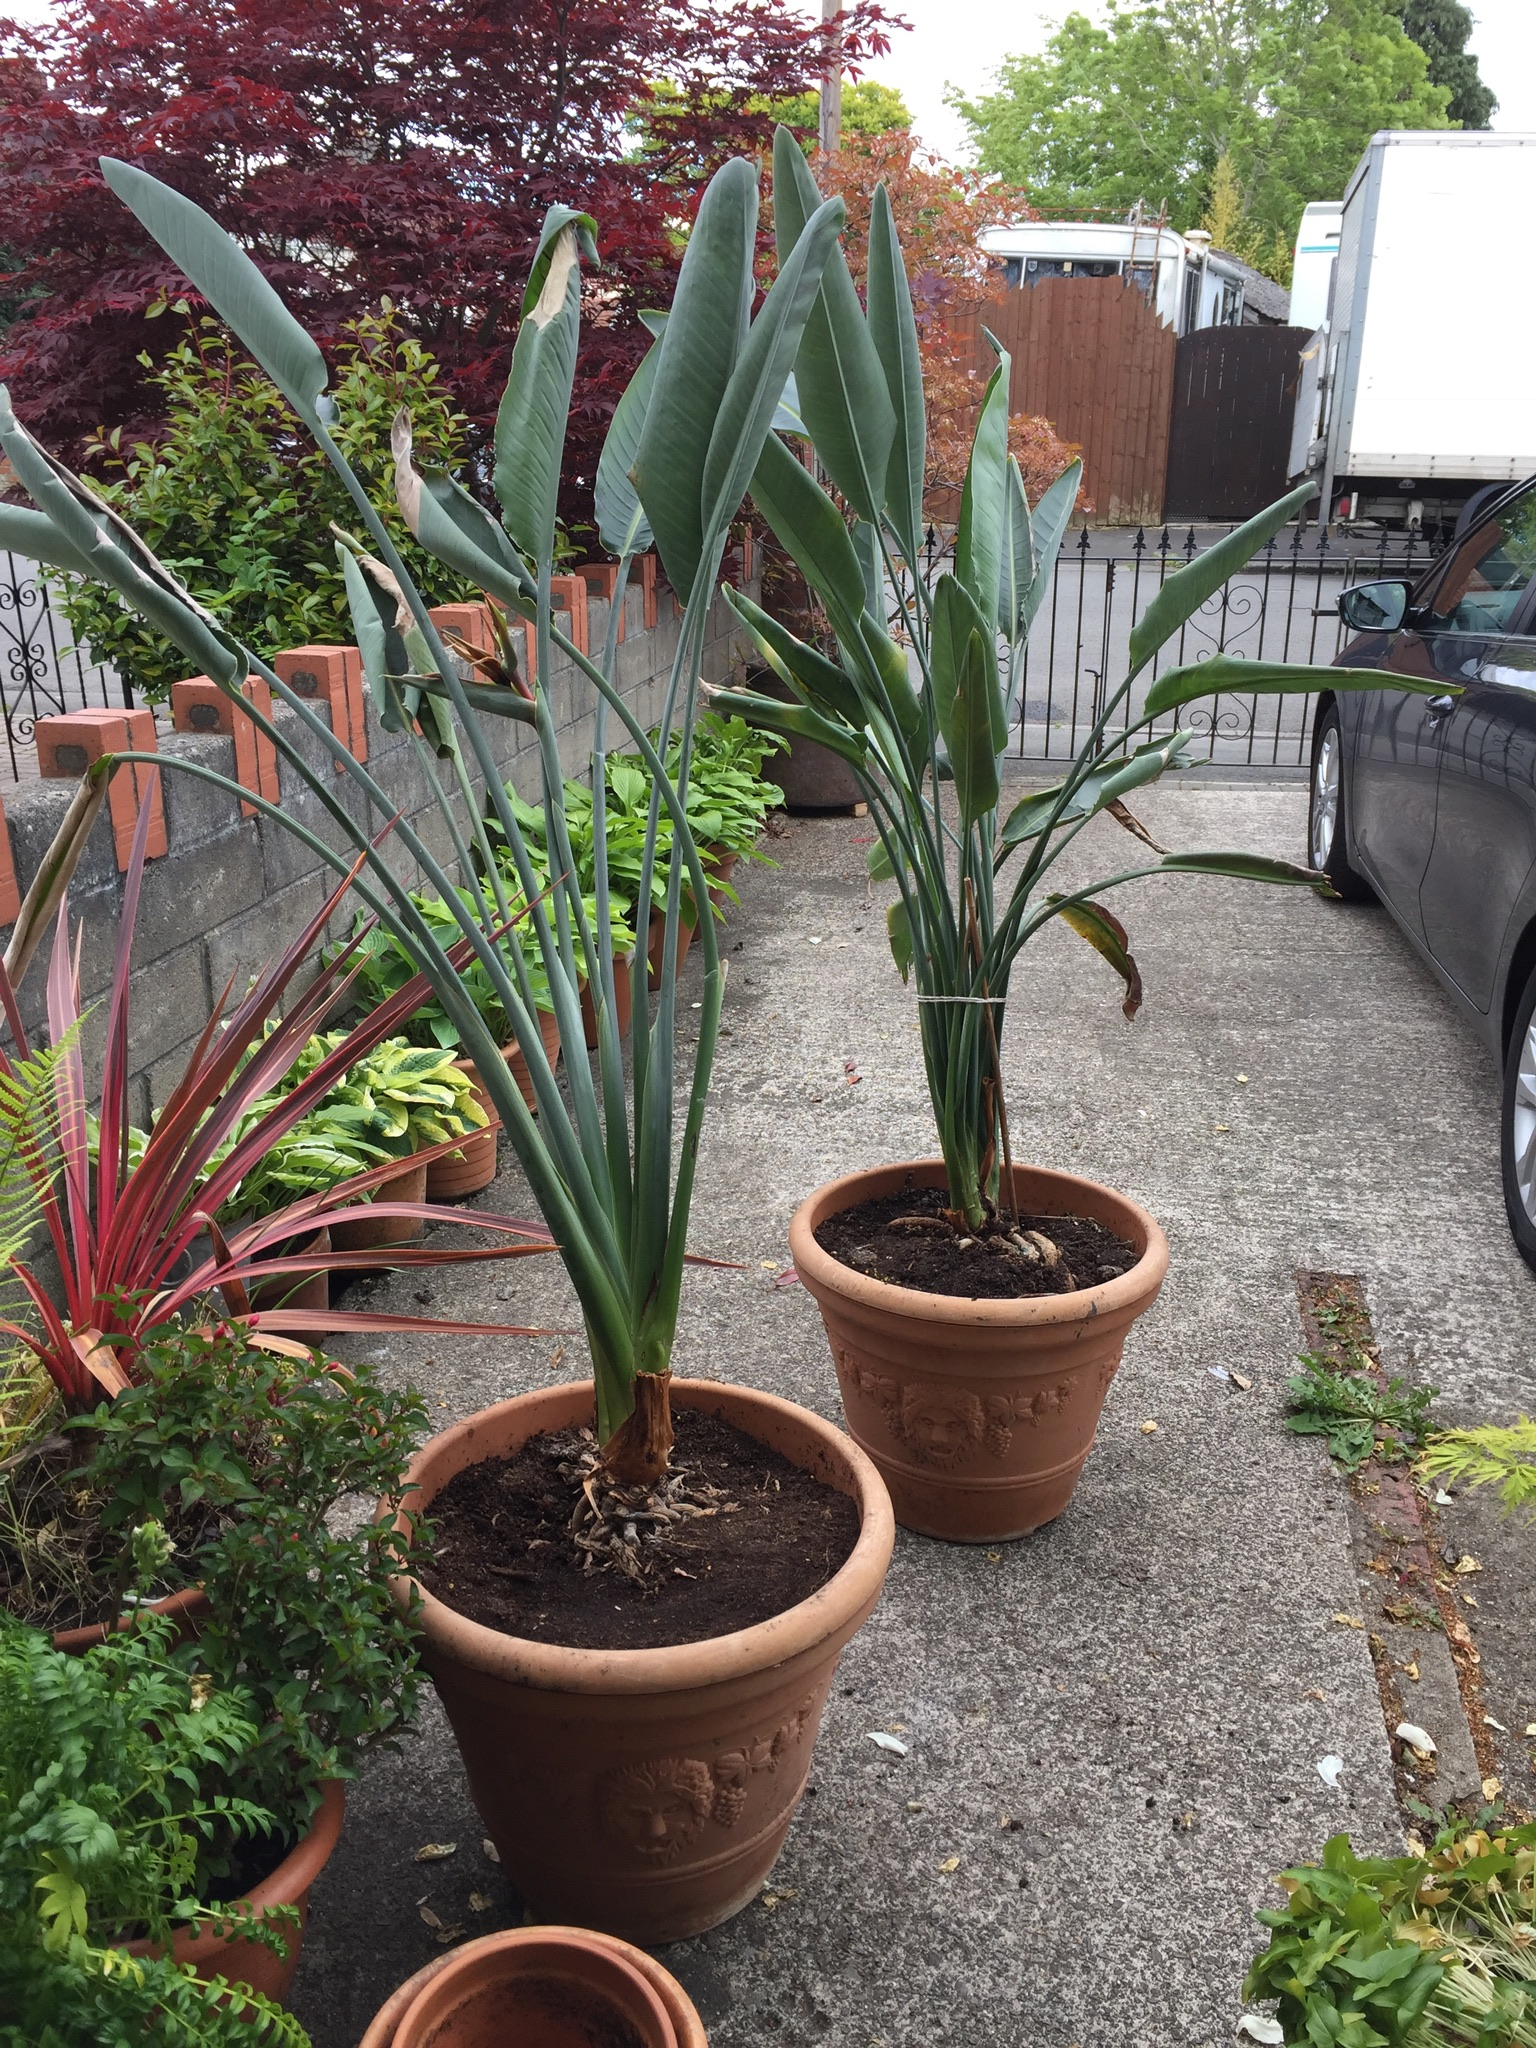 I Ve Acquired Two Birds Of Paradise Plants They Re Not In The Best Condition Leaning And Climbing Out Their Pots